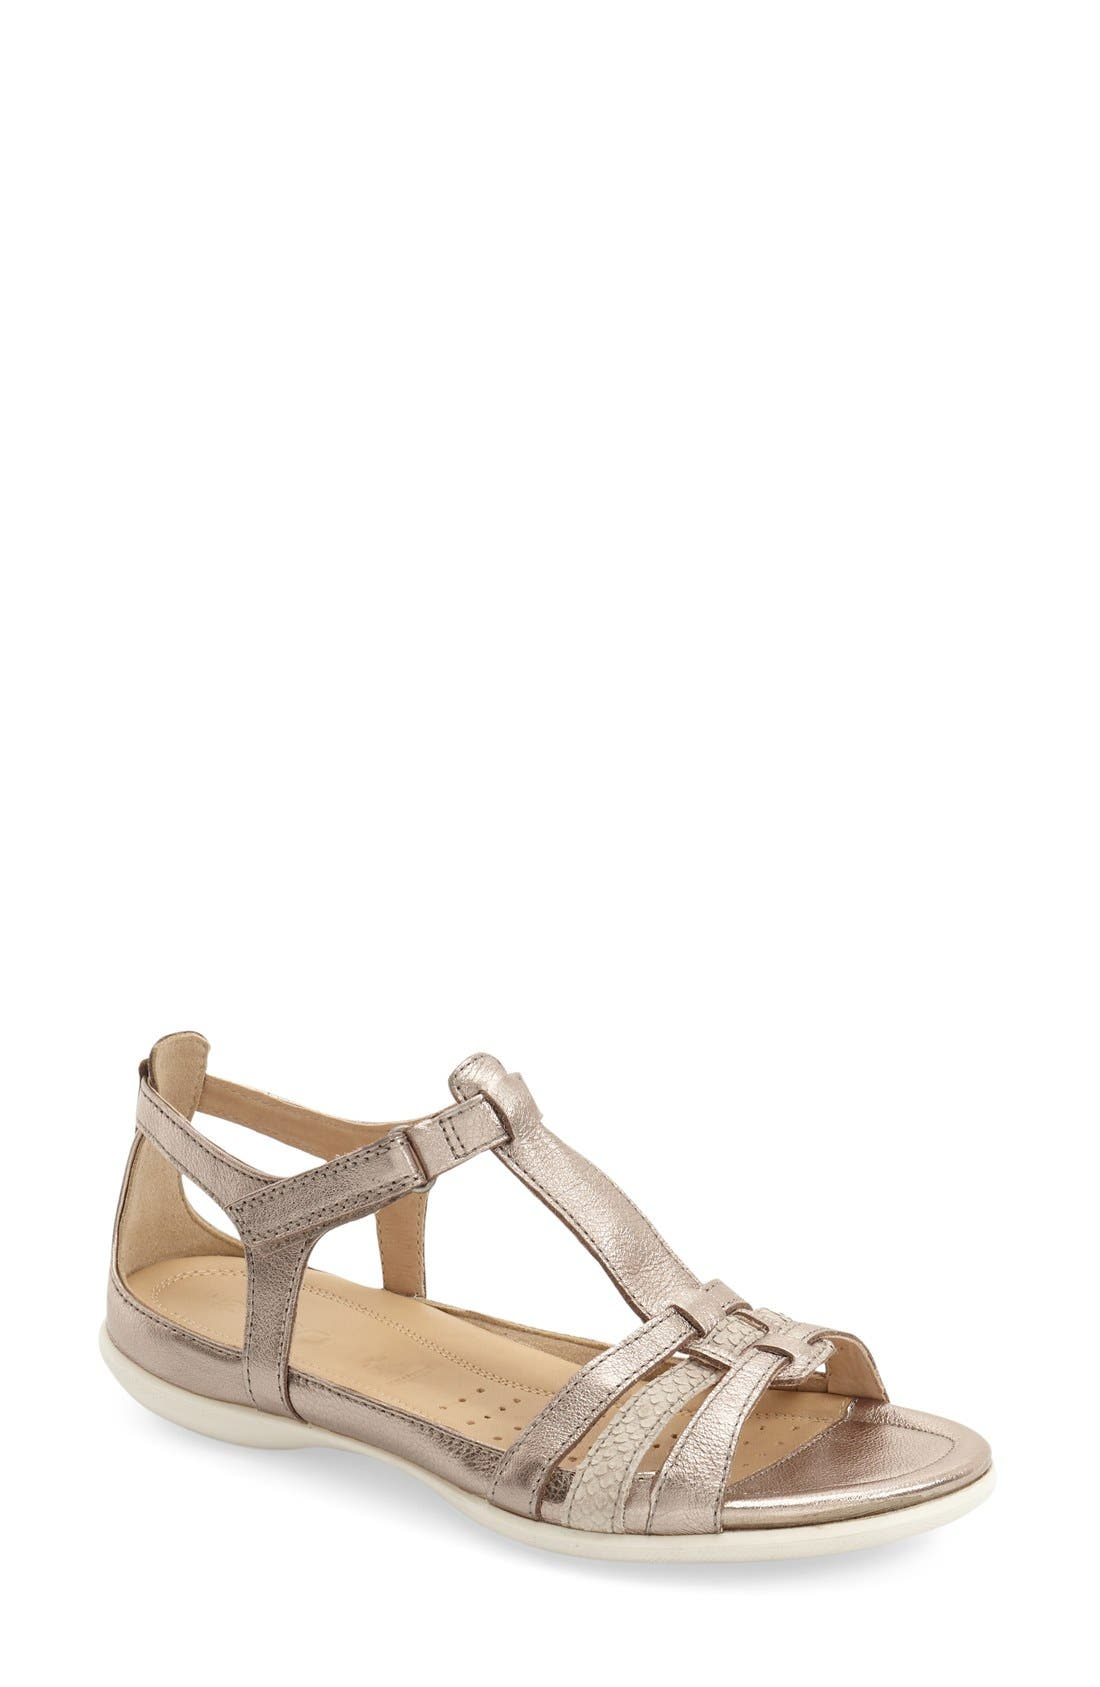 'Flash' Sandal,                         Main,                         color, Warm Grey/ Metallic Leather